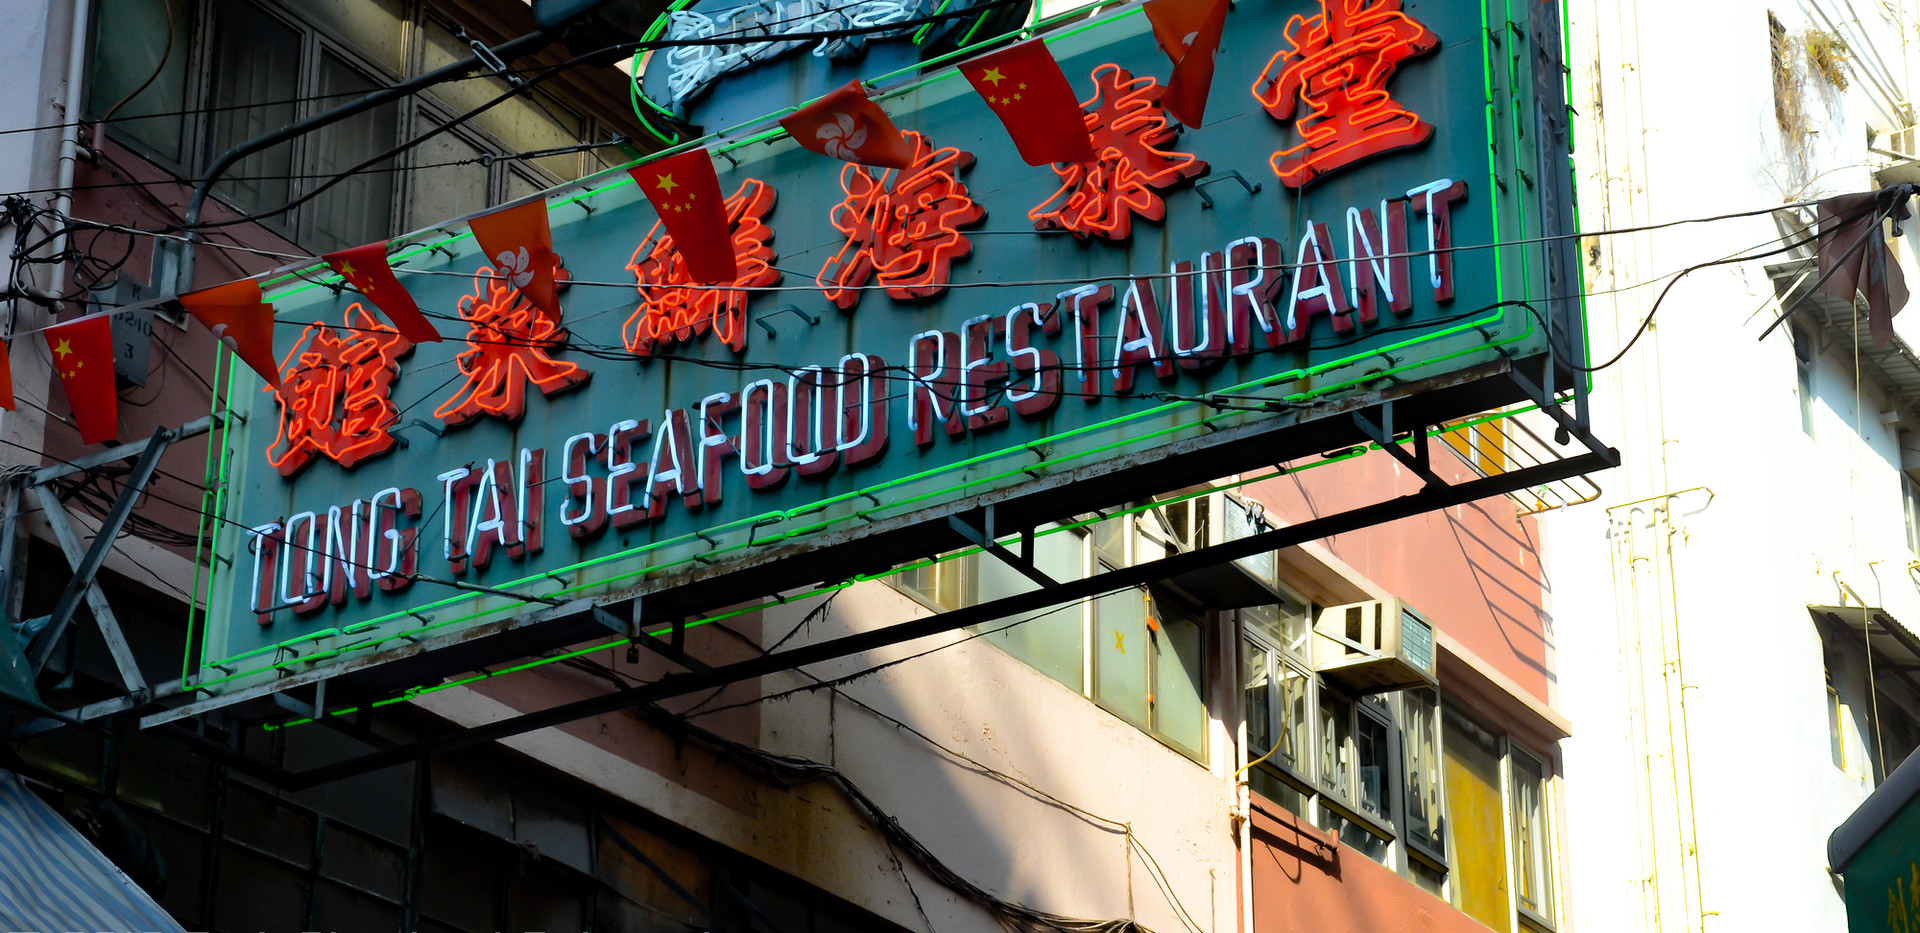 Tong Tai Seafood Restaurant Sign